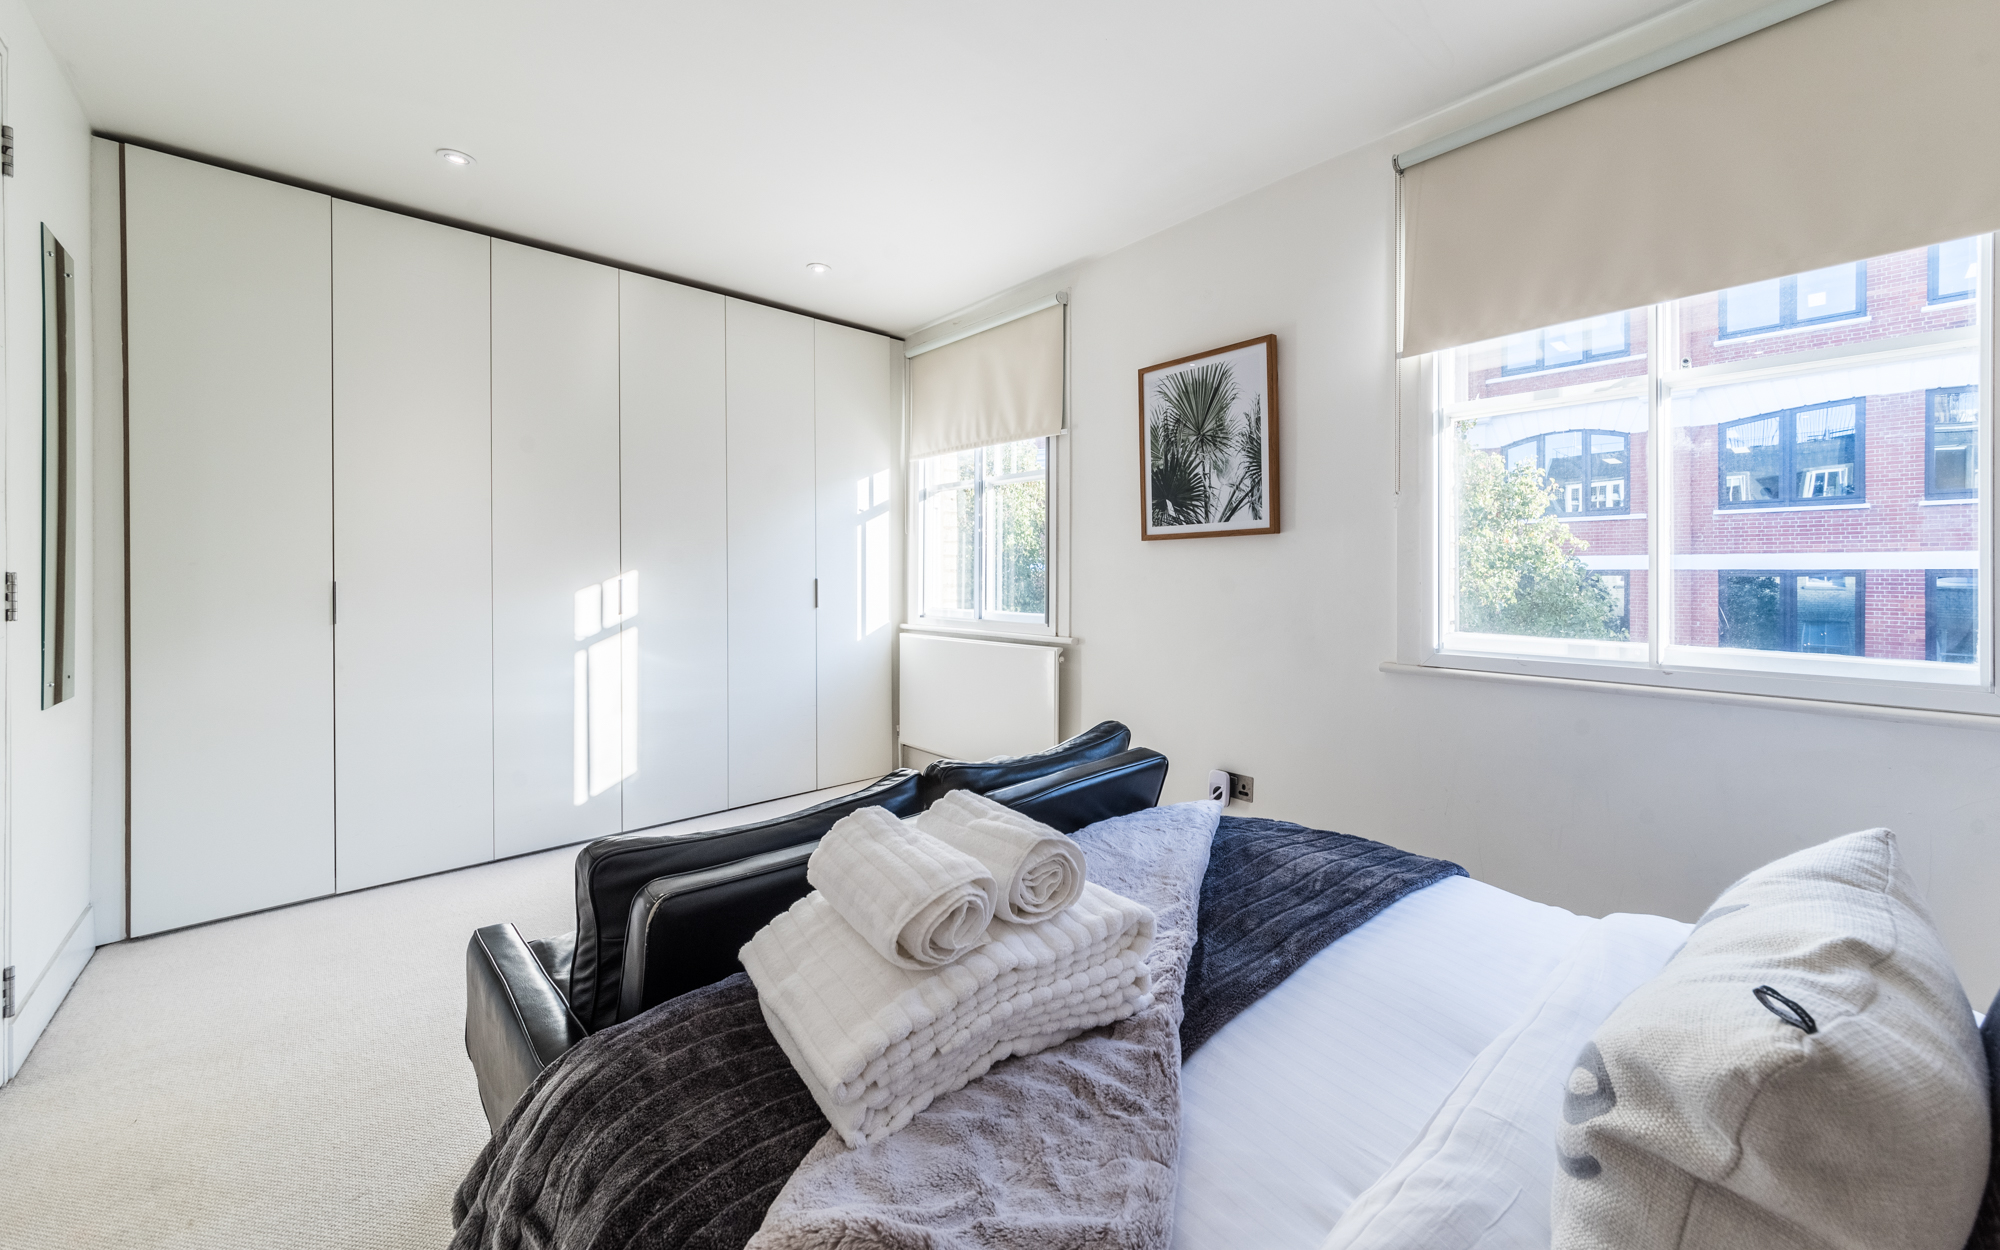 Lovelydays luxury service apartment rental - London - Fitzrovia - Foley Street II - Lovelysuite - 2 bedrooms - 2 bathrooms - Double bed - c34f585b596b - Lovelydays